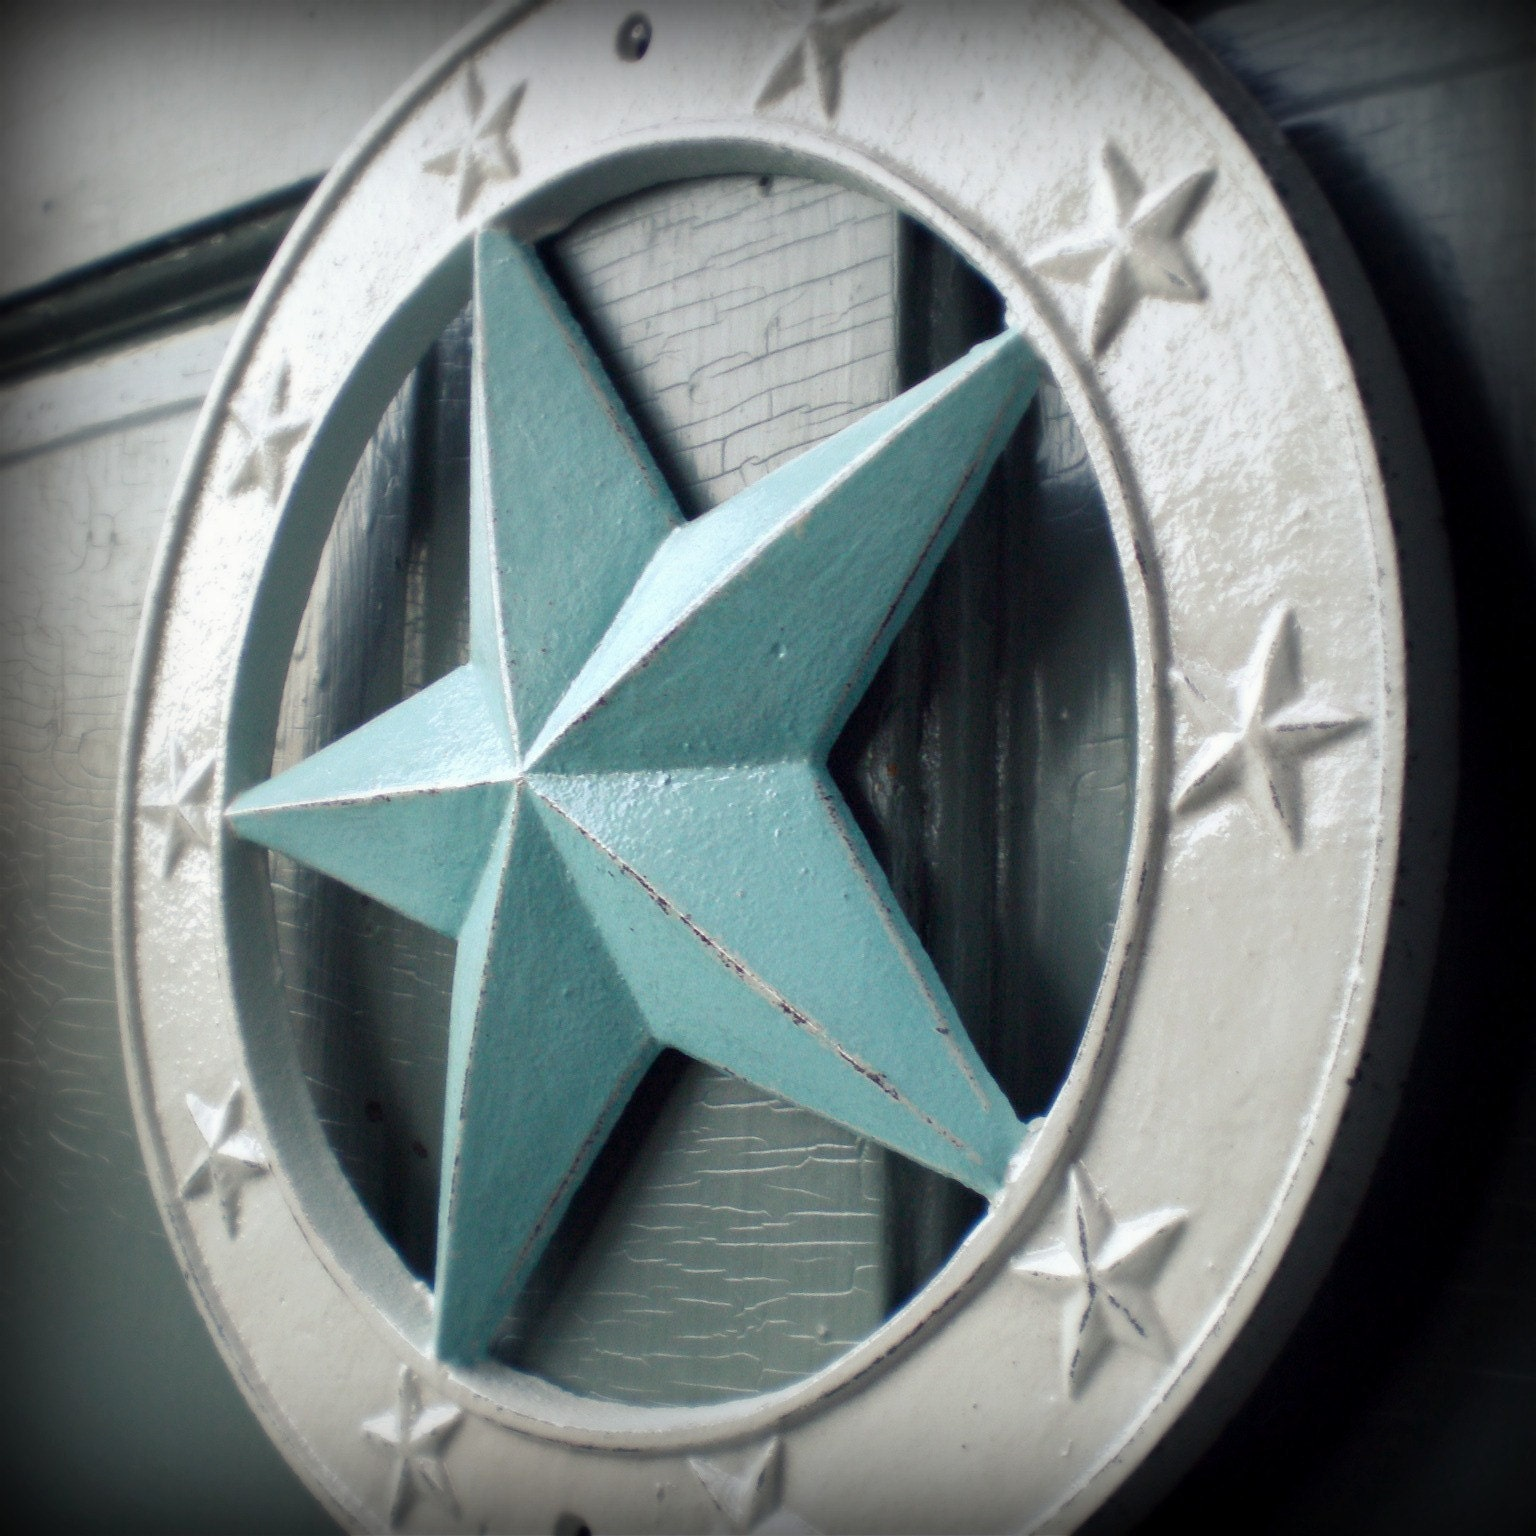 Blue Star Wall Decor : Nautical star wall decor large blue and white